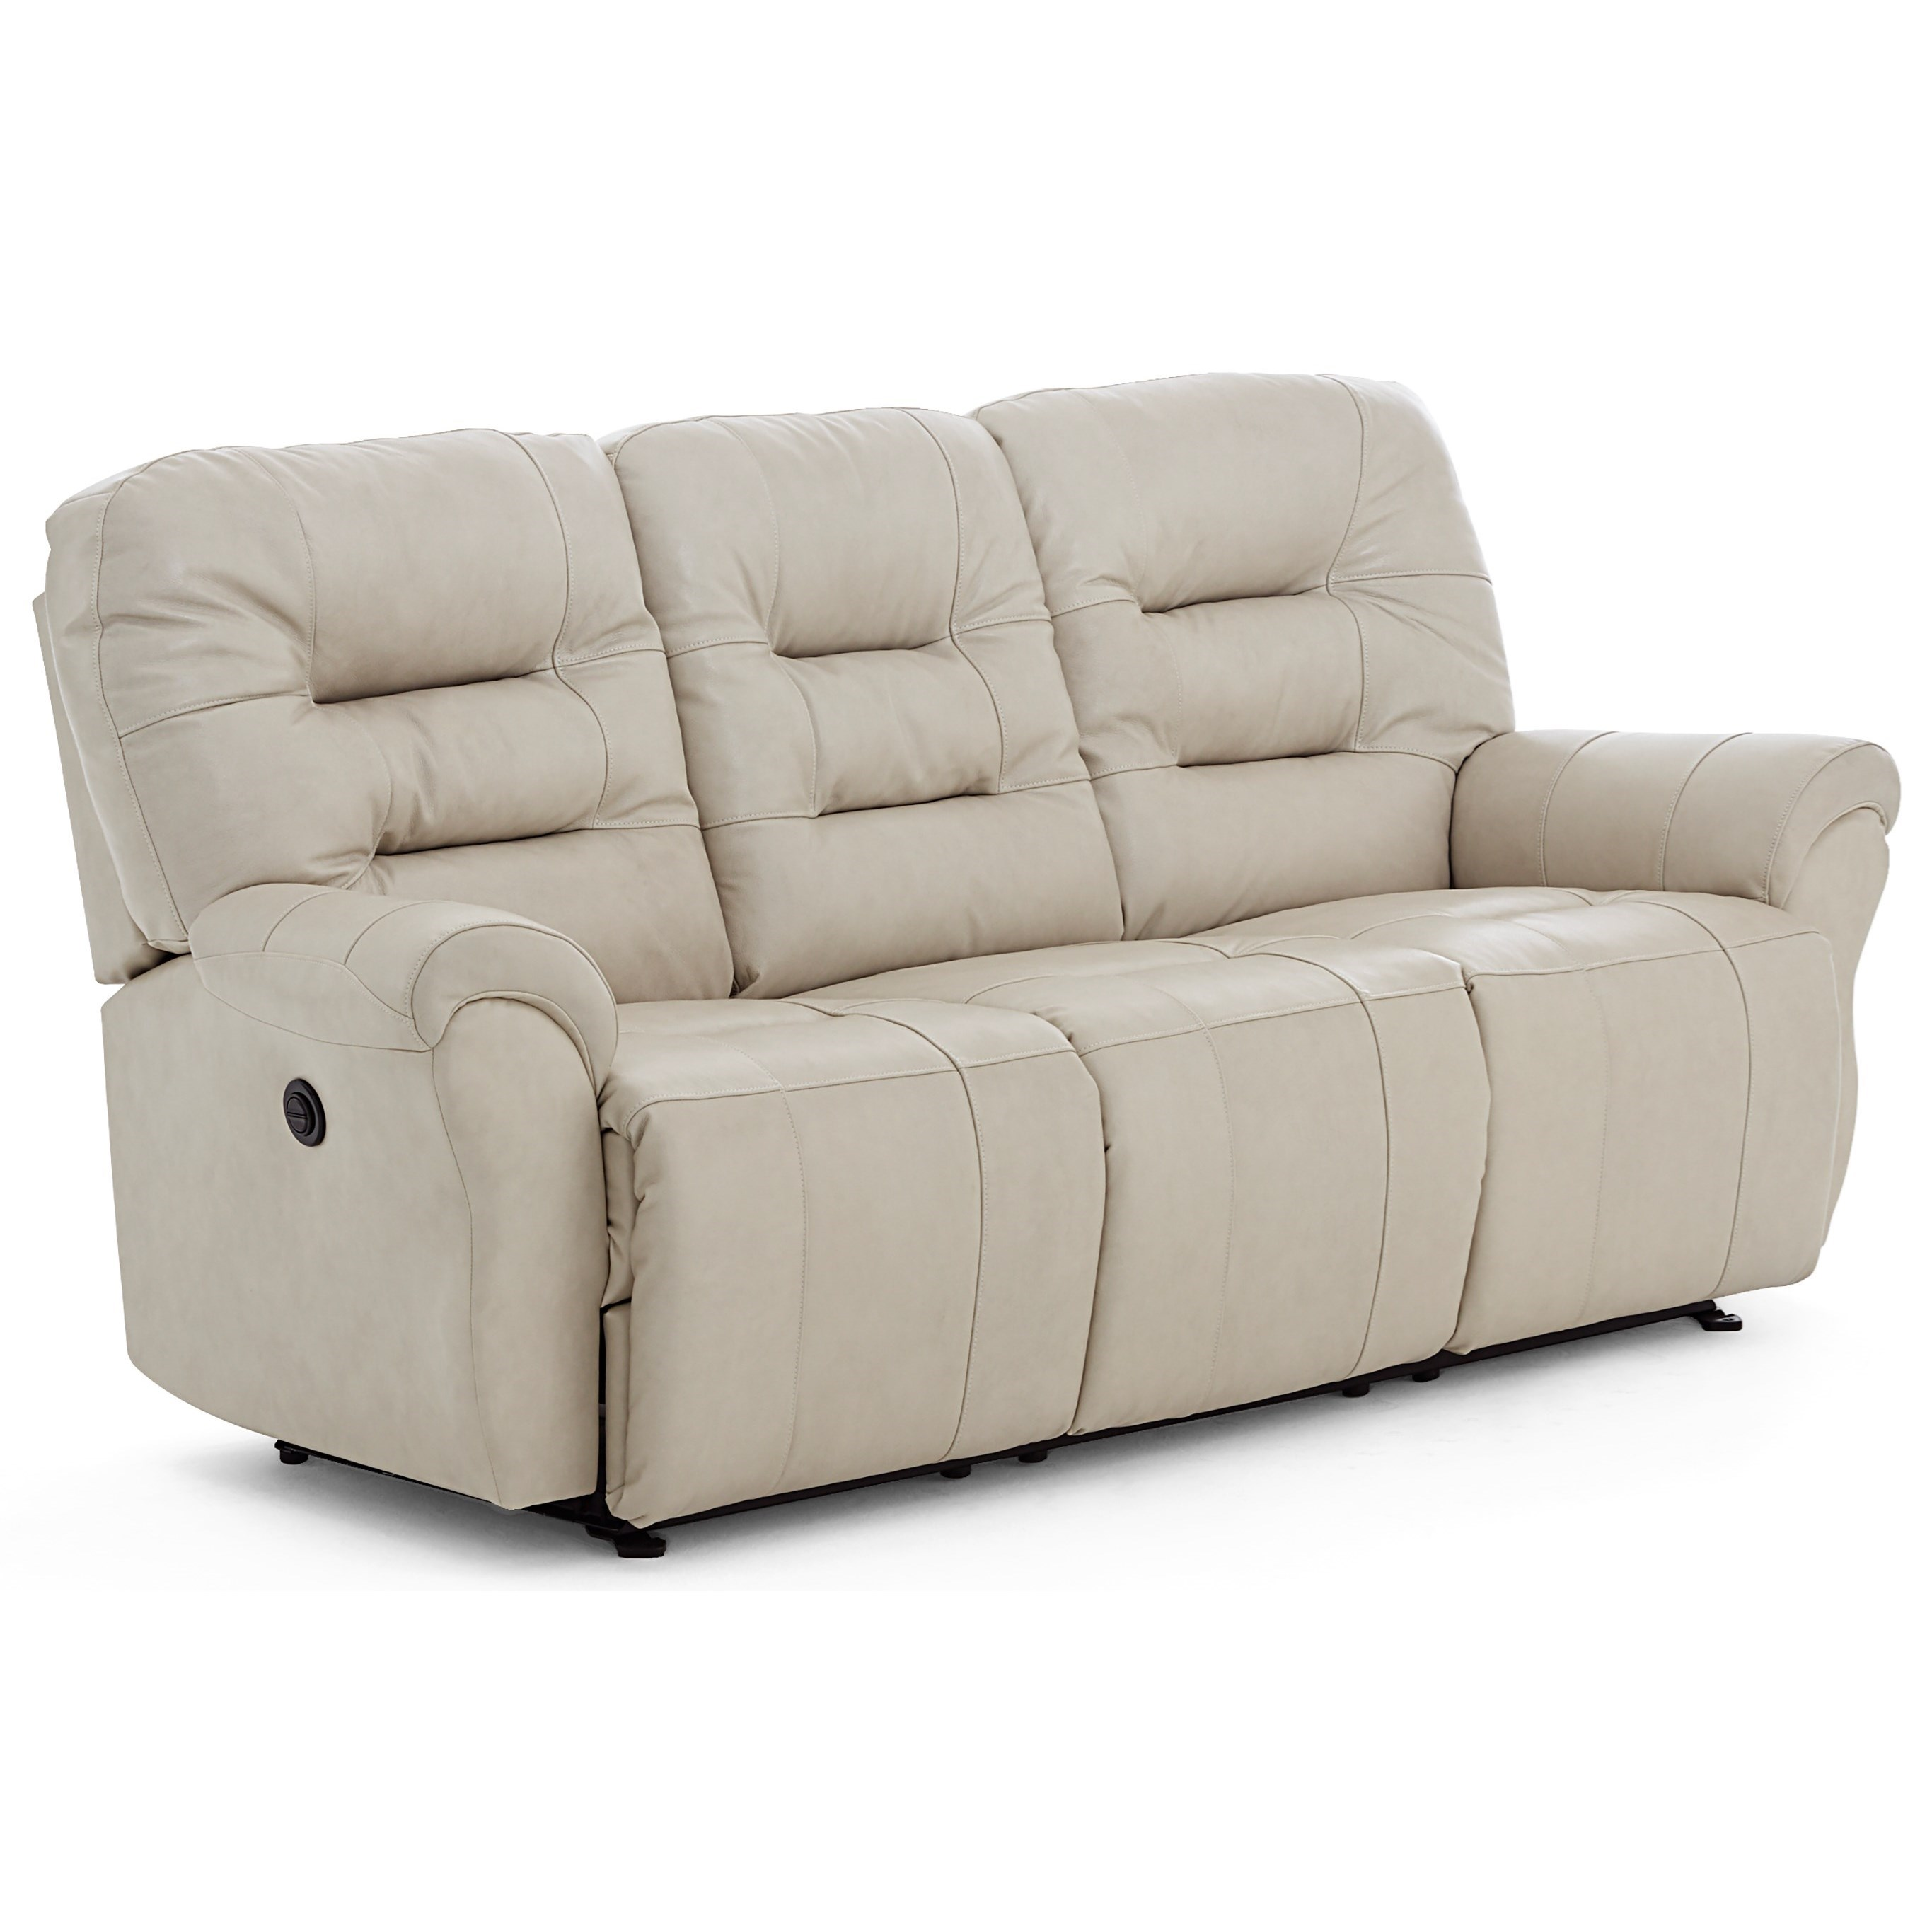 Unity Power Space Saver Sofa Chaise by Best Home Furnishings at Factory Direct Furniture